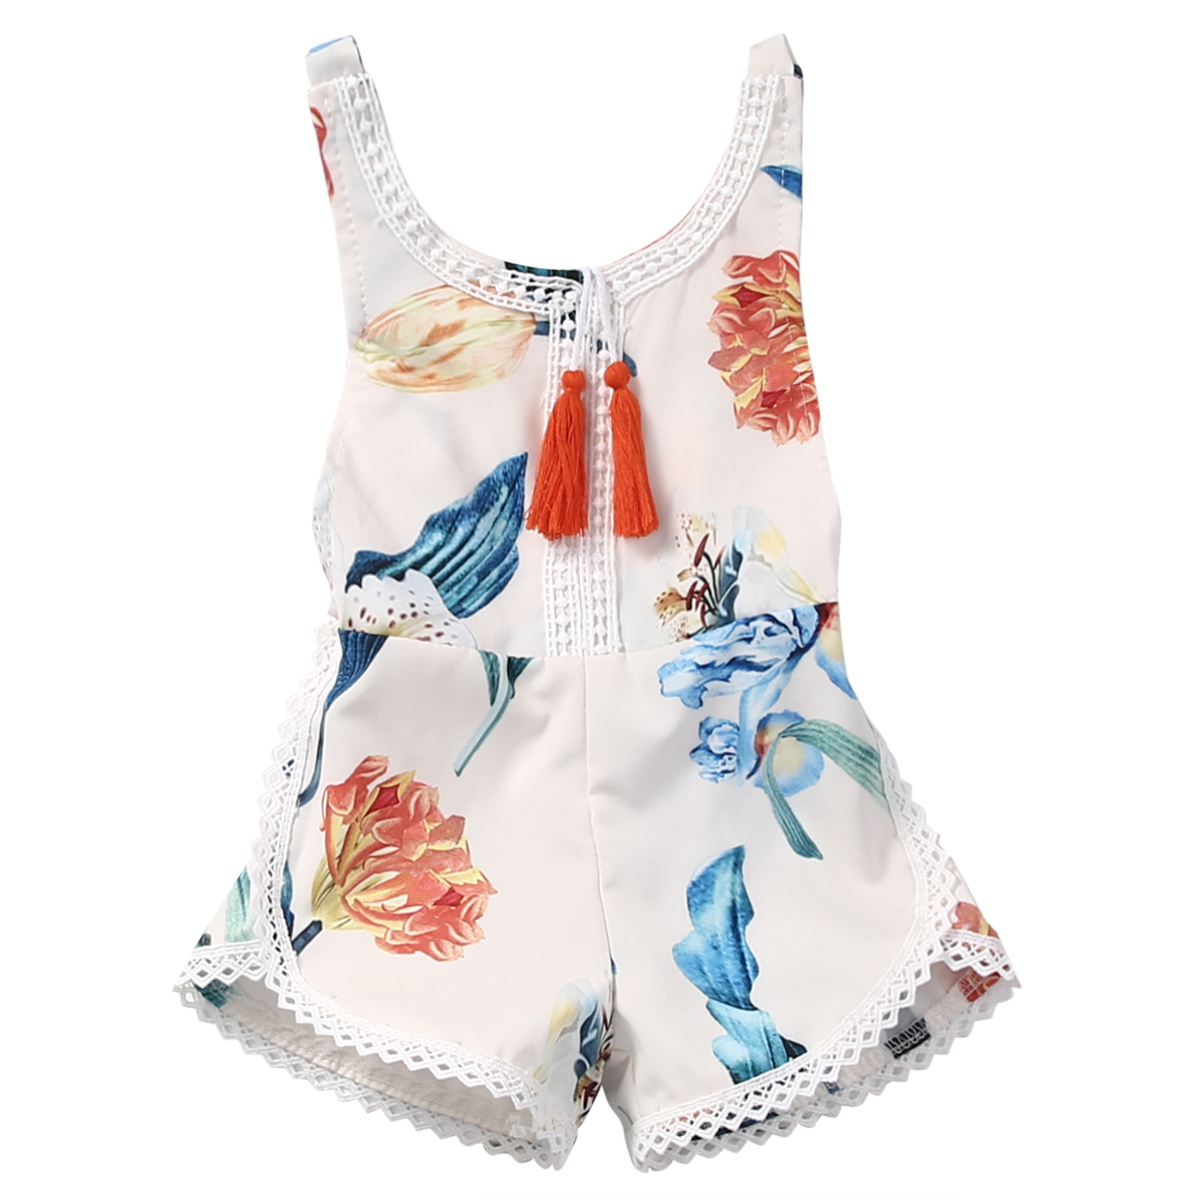 Girls' Baby Clothing Summer Newborn Baby Girls Floral Clothes Sleeveless Rompers Skirt Jumpsuit Sunsuit Outfits New Rompers